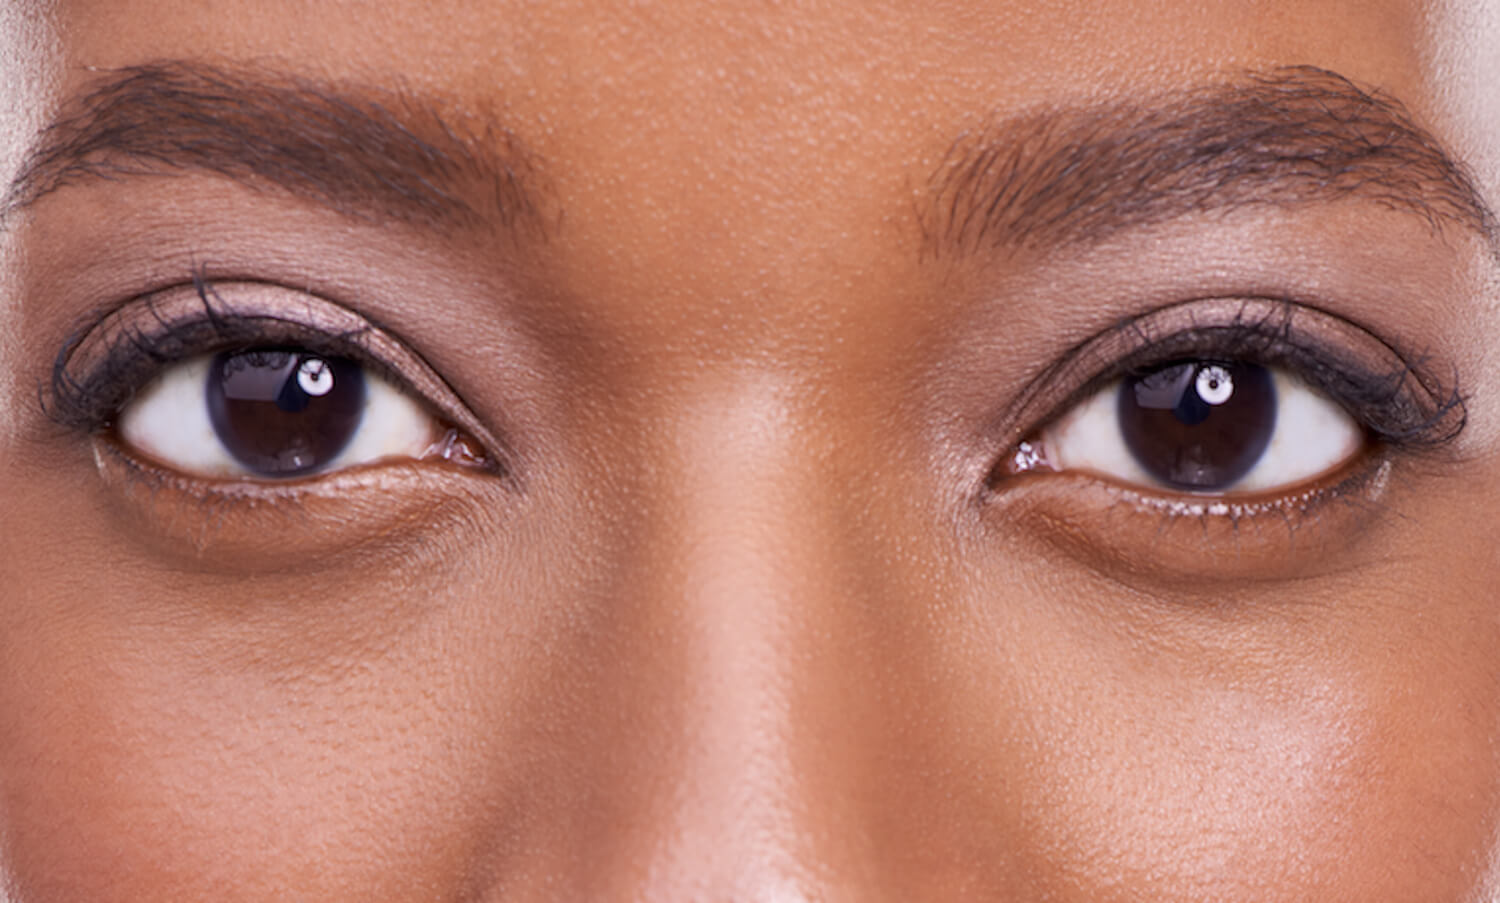 Close up of a determined woman's eyes